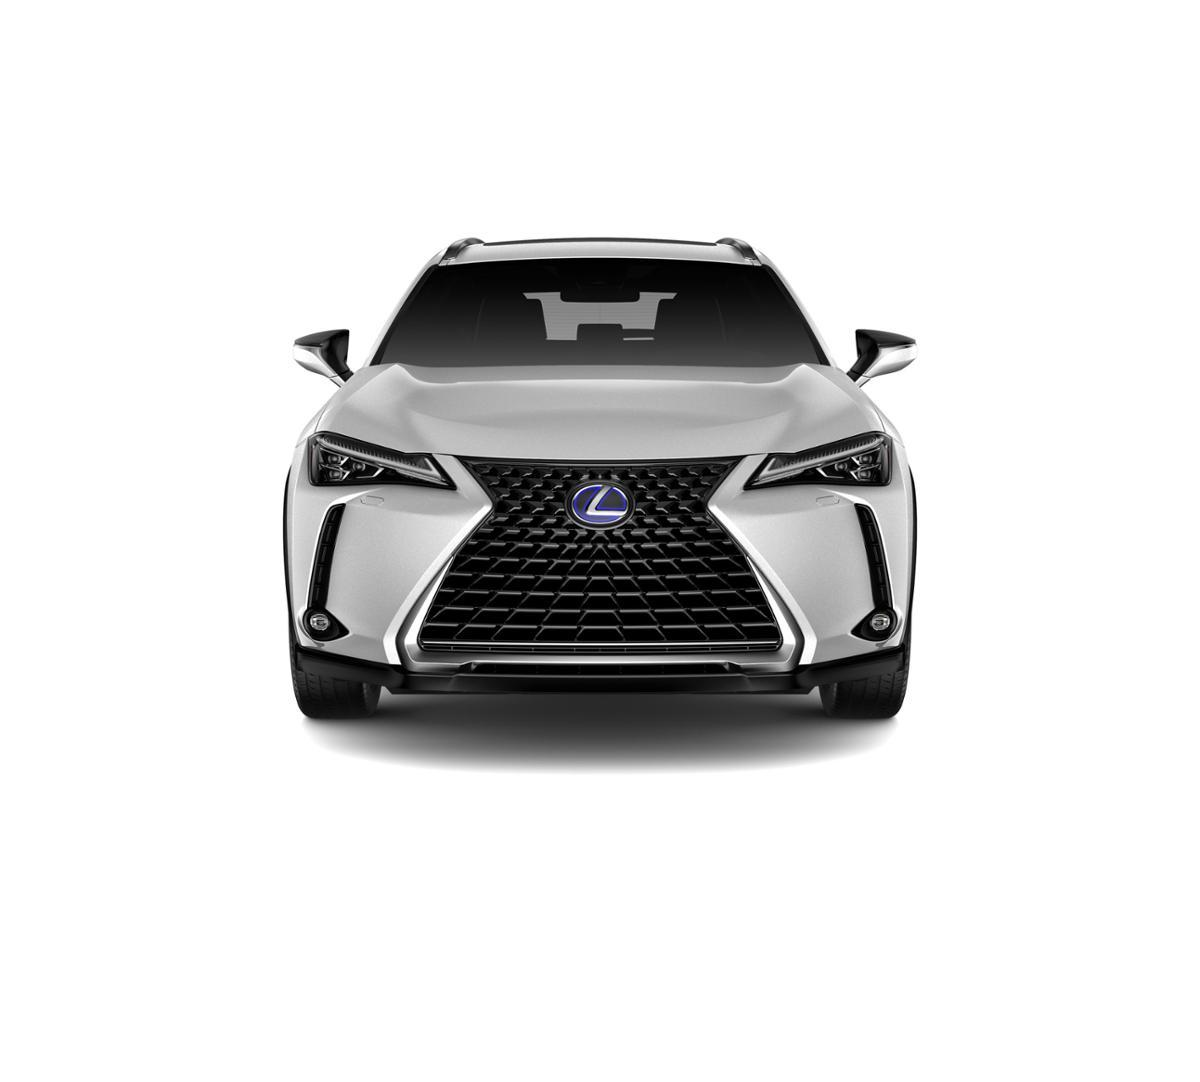 2019 Lexus UX 250h Vehicle Photo in Larchmont, NY 10538